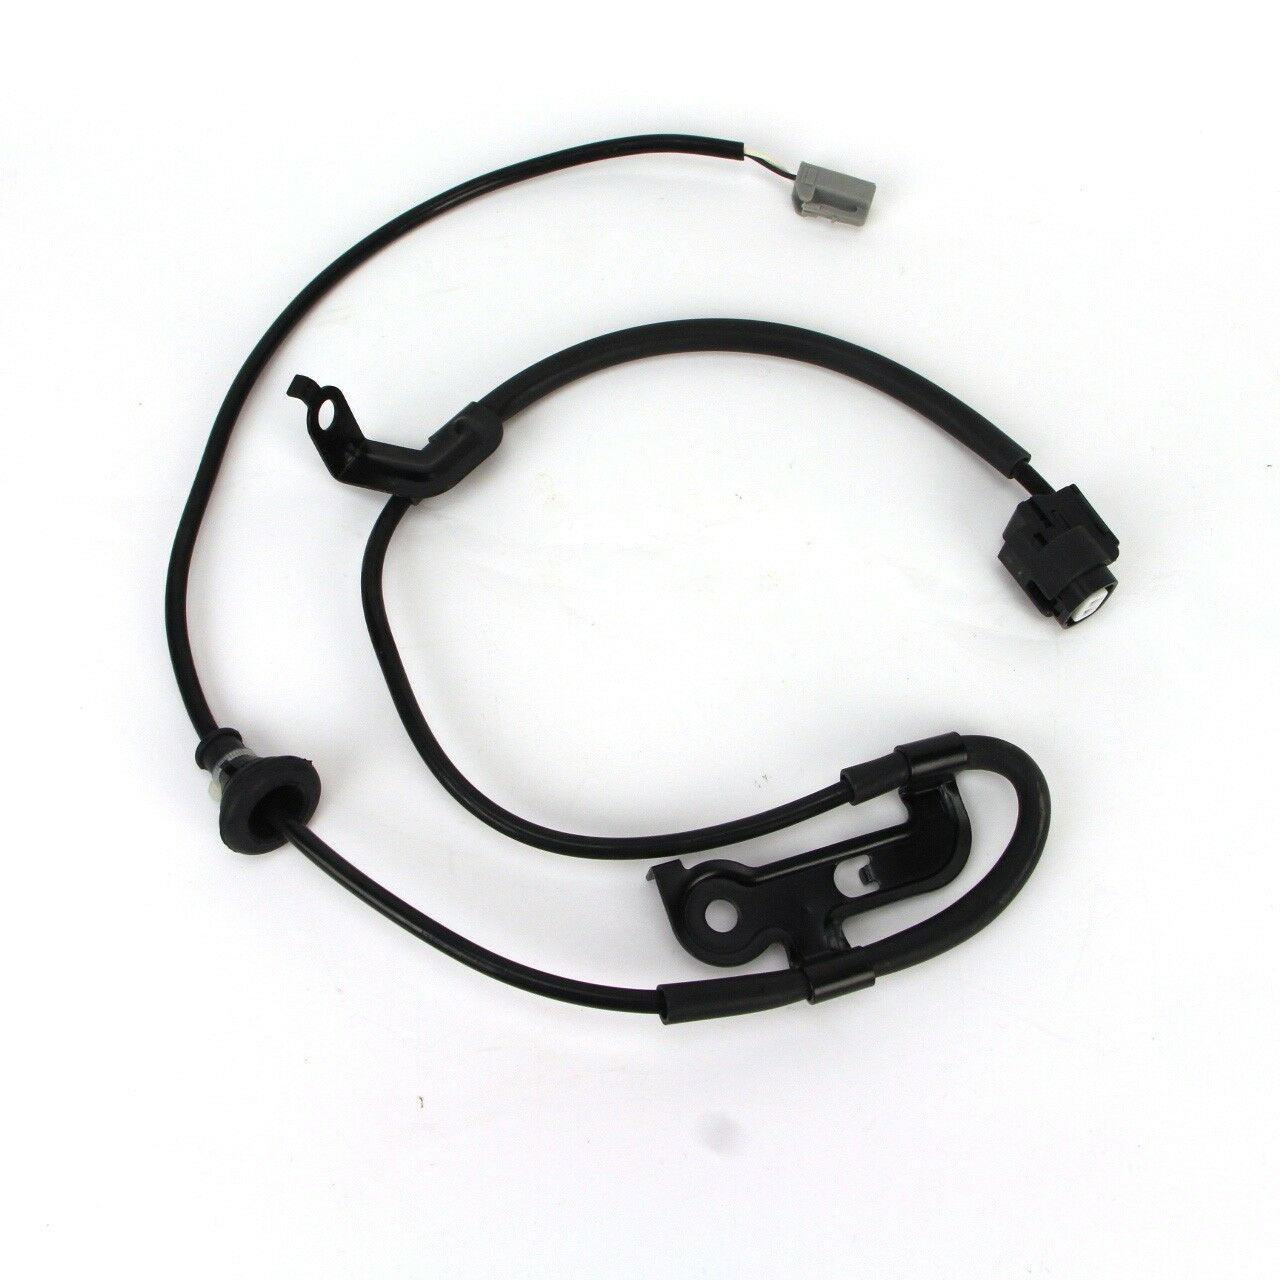 Oe 89516 33040 Abs Speed Sensor Wire Harness For Toyota Camry 06 11 Wiring 1 Of 6only 5 Available